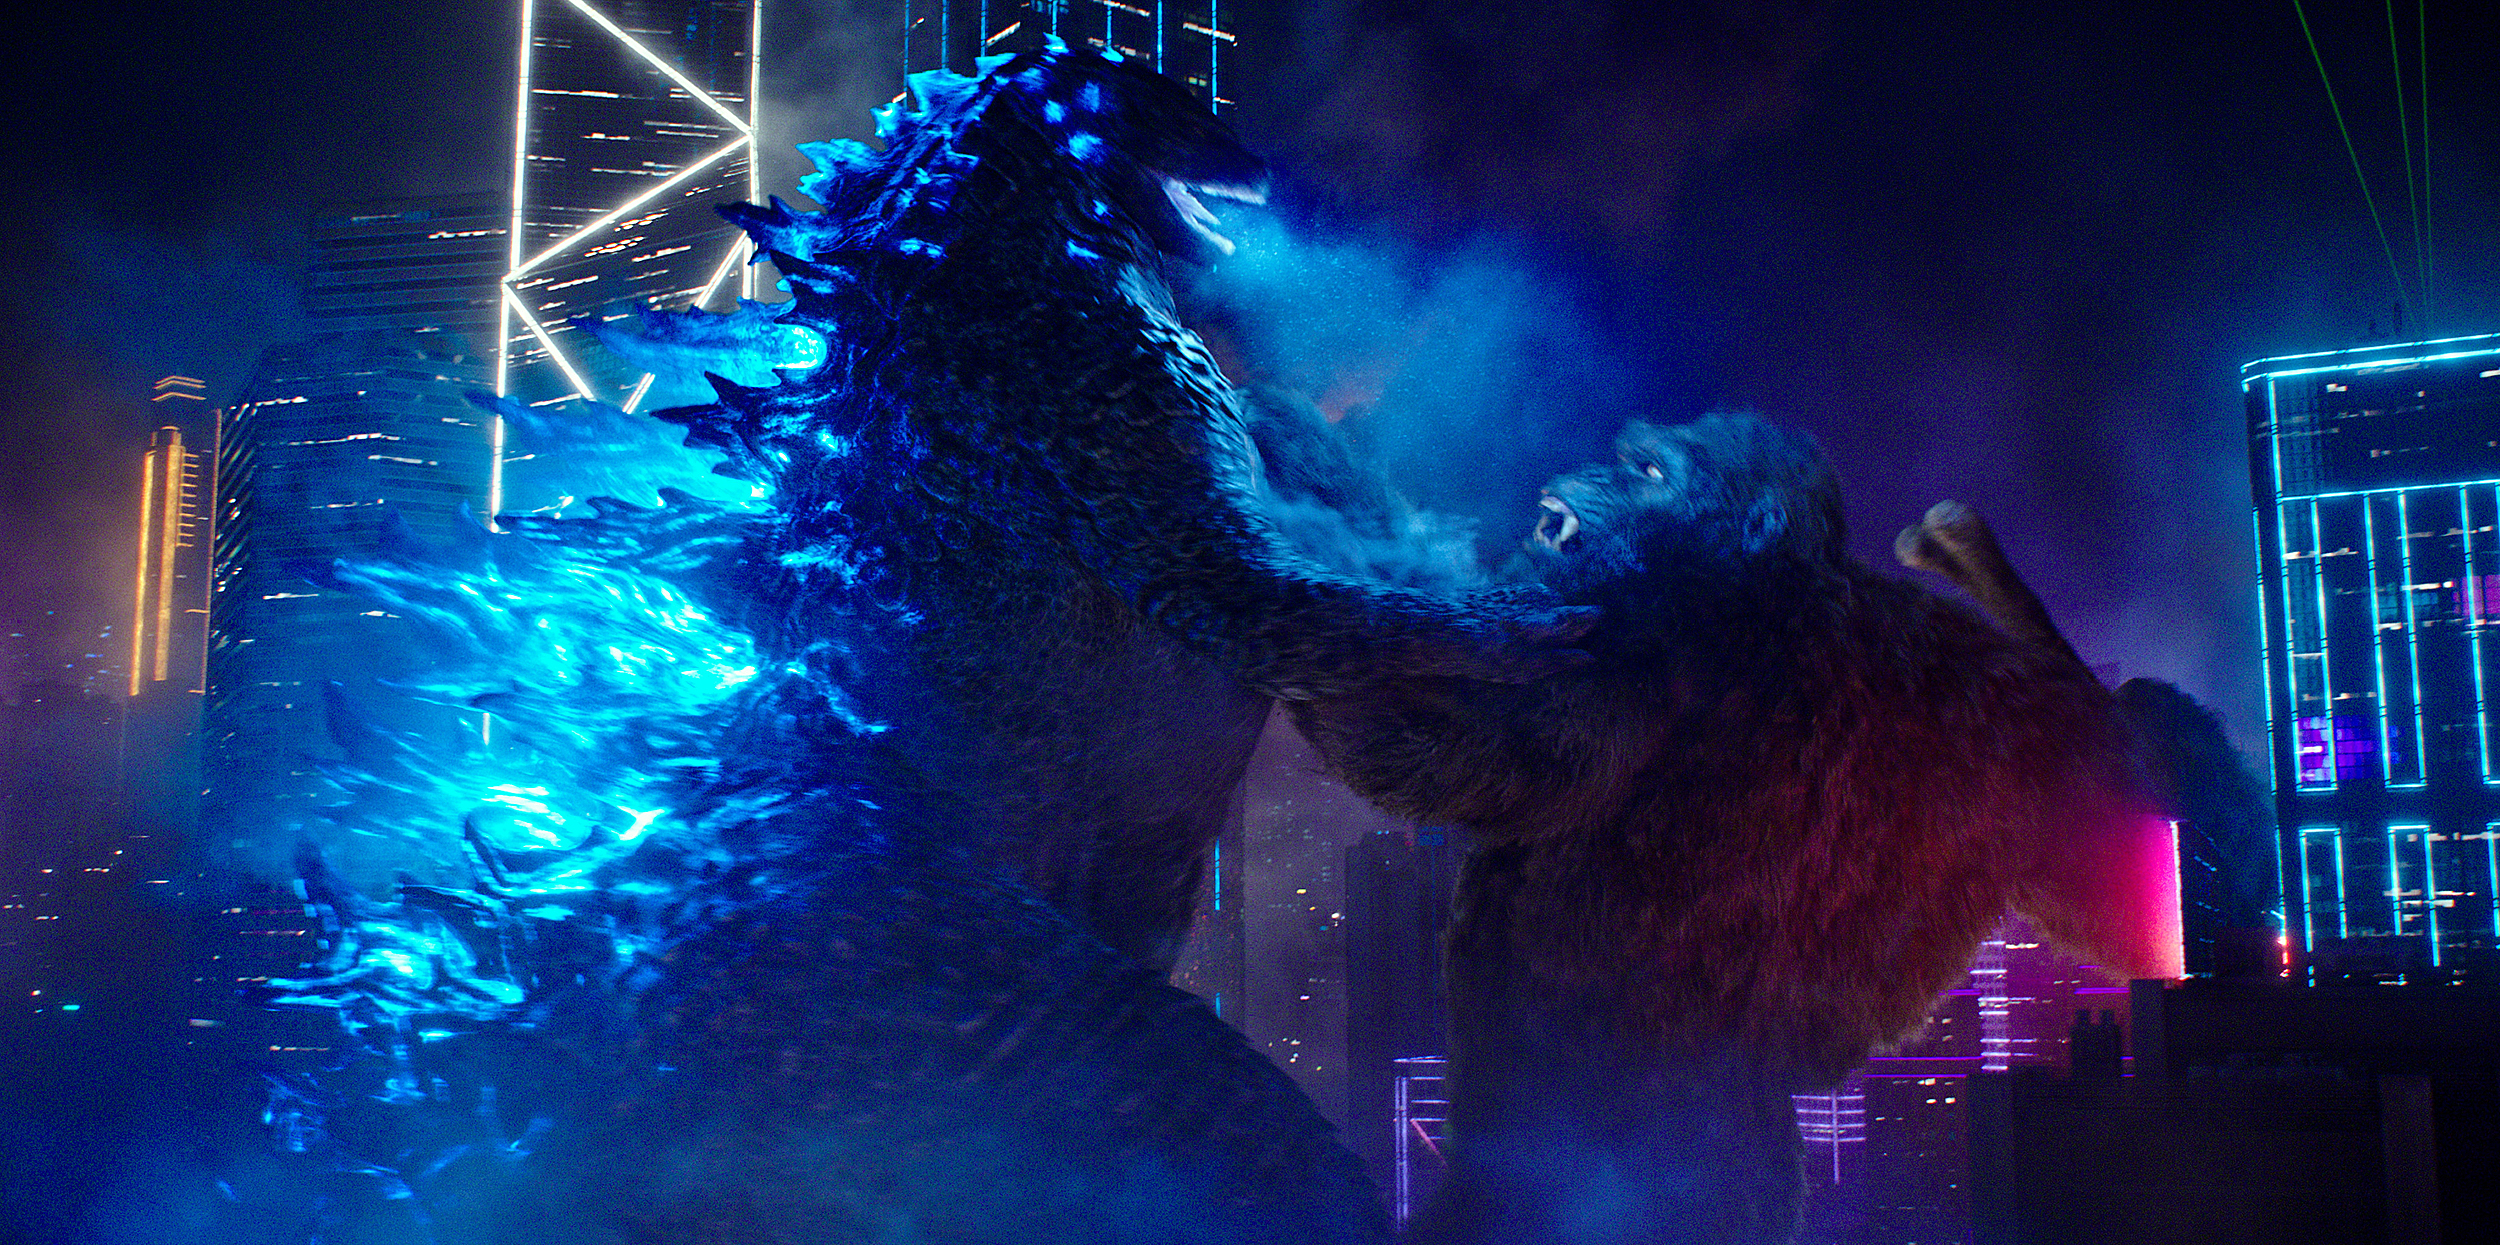 Godzilla vs. Kong' on HBO Max is comforting — in a mindless monster battle kind of way